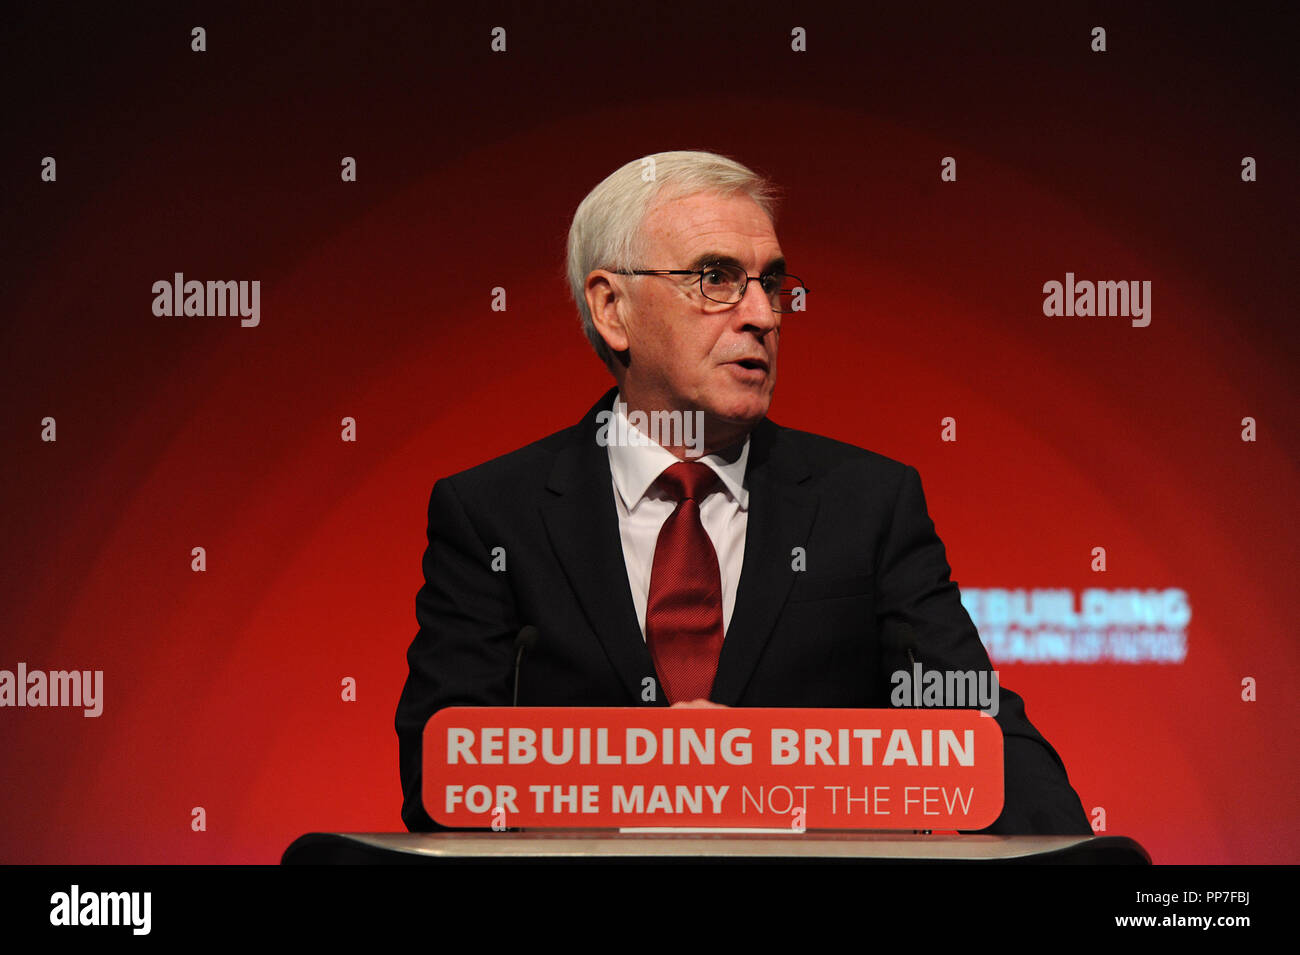 Liverpool, UK. 24th Sep, 2018. John McDonnell MP, Shadow Chancellor, delivering his keynote speech on the theme of Private Investment and Ownership, on the morning session of the second day of the Labour Party annual conference at the ACC Conference Centre. Credit: Kevin Hayes/Alamy Live News - Stock Image